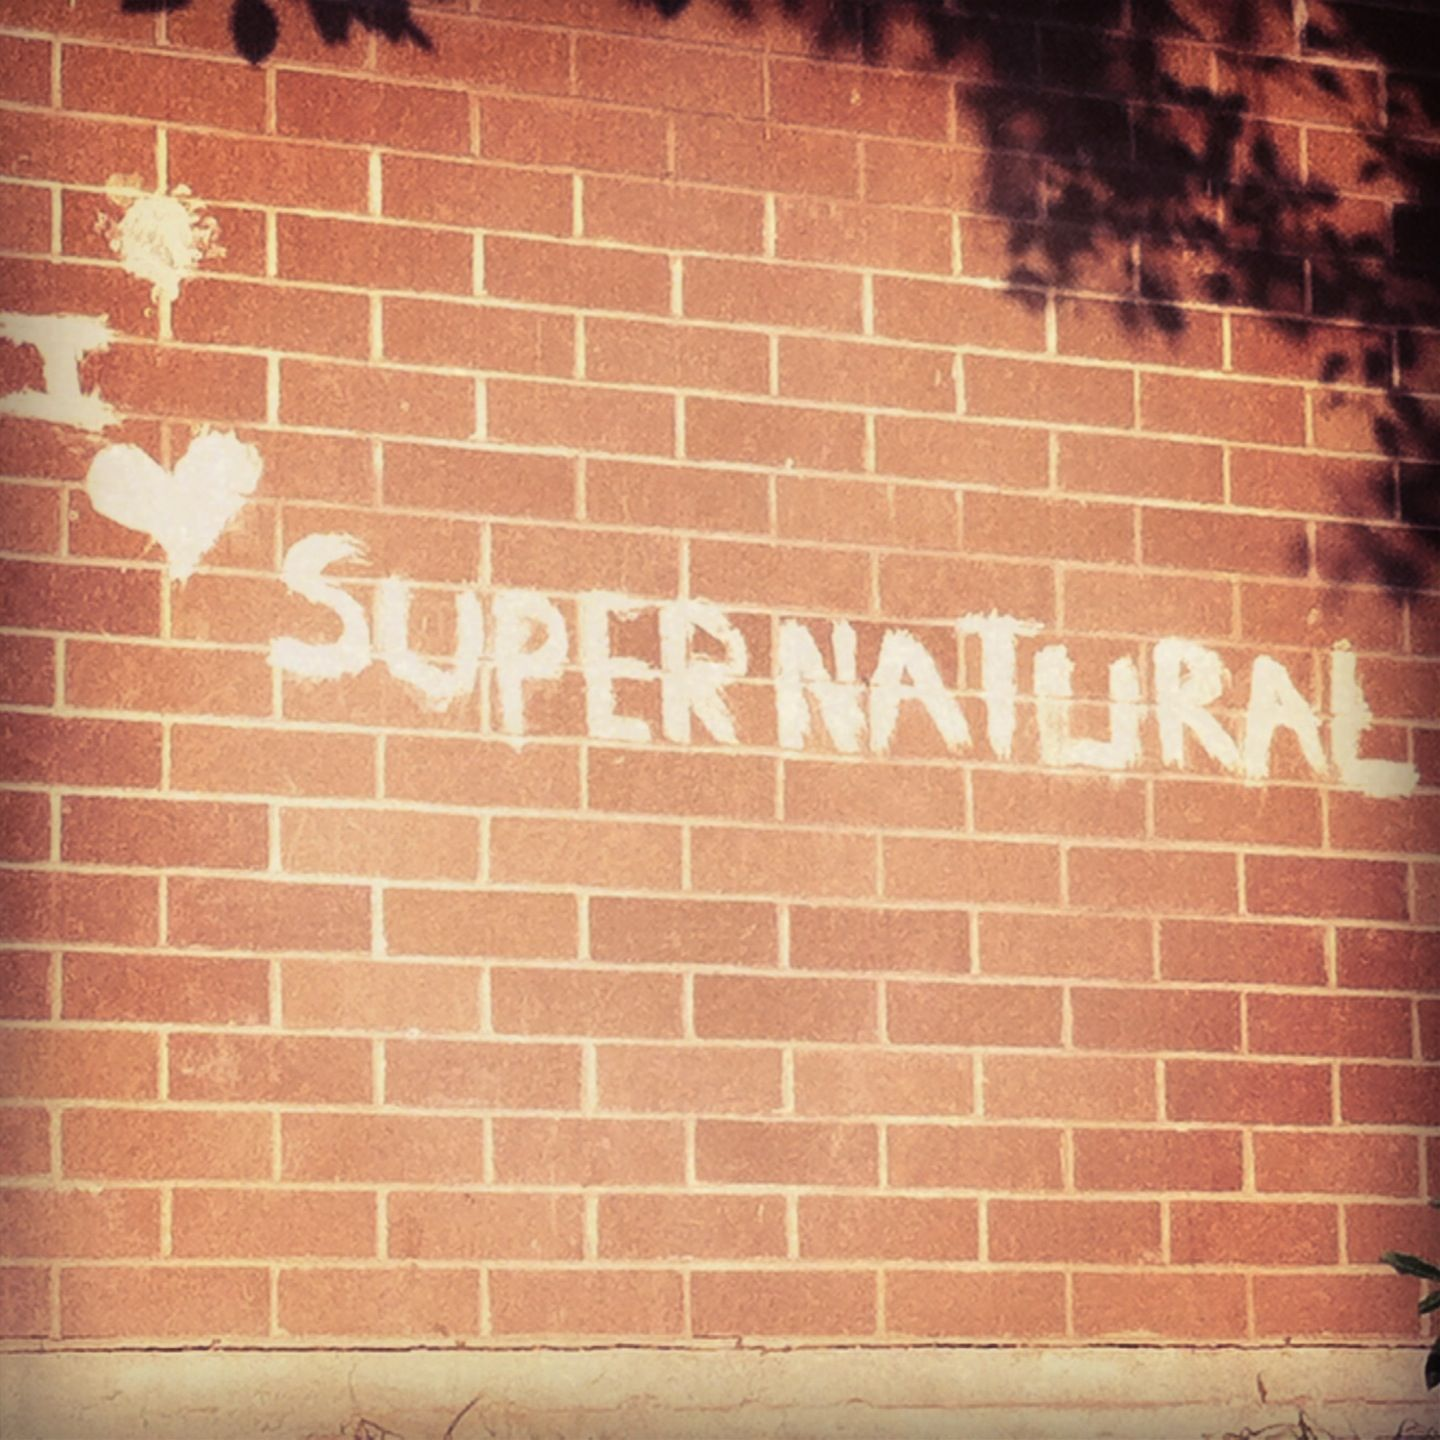 Everybody loves Supernatural